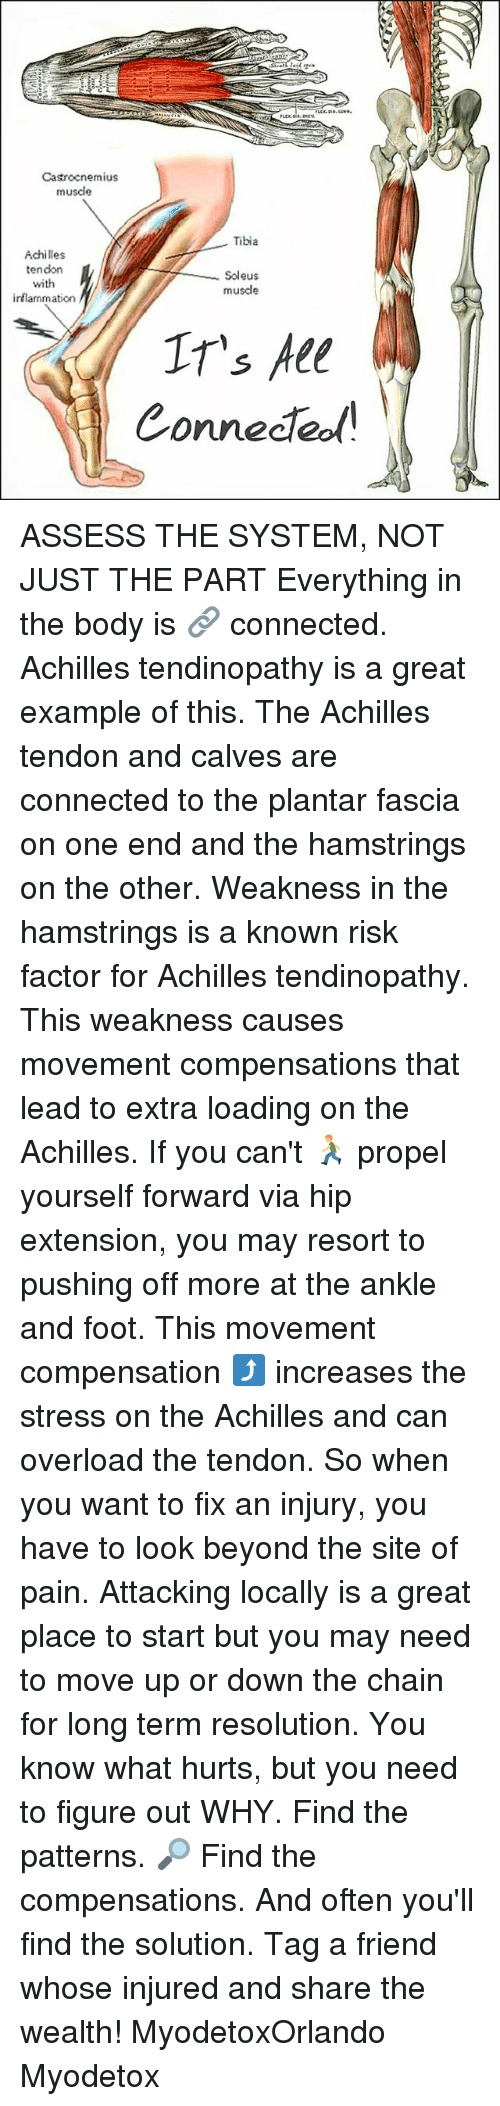 propeller: Castrocnemius  musde  Tibia  Achilles  tendon  Soleus  with  muscle  inflammation  IT's All  Connected ASSESS THE SYSTEM, NOT JUST THE PART Everything in the body is 🔗 connected. Achilles tendinopathy is a great example of this. The Achilles tendon and calves are connected to the plantar fascia on one end and the hamstrings on the other. Weakness in the hamstrings is a known risk factor for Achilles tendinopathy. This weakness causes movement compensations that lead to extra loading on the Achilles. If you can't 🏃 propel yourself forward via hip extension, you may resort to pushing off more at the ankle and foot. This movement compensation ⤴ increases the stress on the Achilles and can overload the tendon. So when you want to fix an injury, you have to look beyond the site of pain. Attacking locally is a great place to start but you may need to move up or down the chain for long term resolution. You know what hurts, but you need to figure out WHY. Find the patterns. 🔎 Find the compensations. And often you'll find the solution. Tag a friend whose injured and share the wealth! MyodetoxOrlando Myodetox